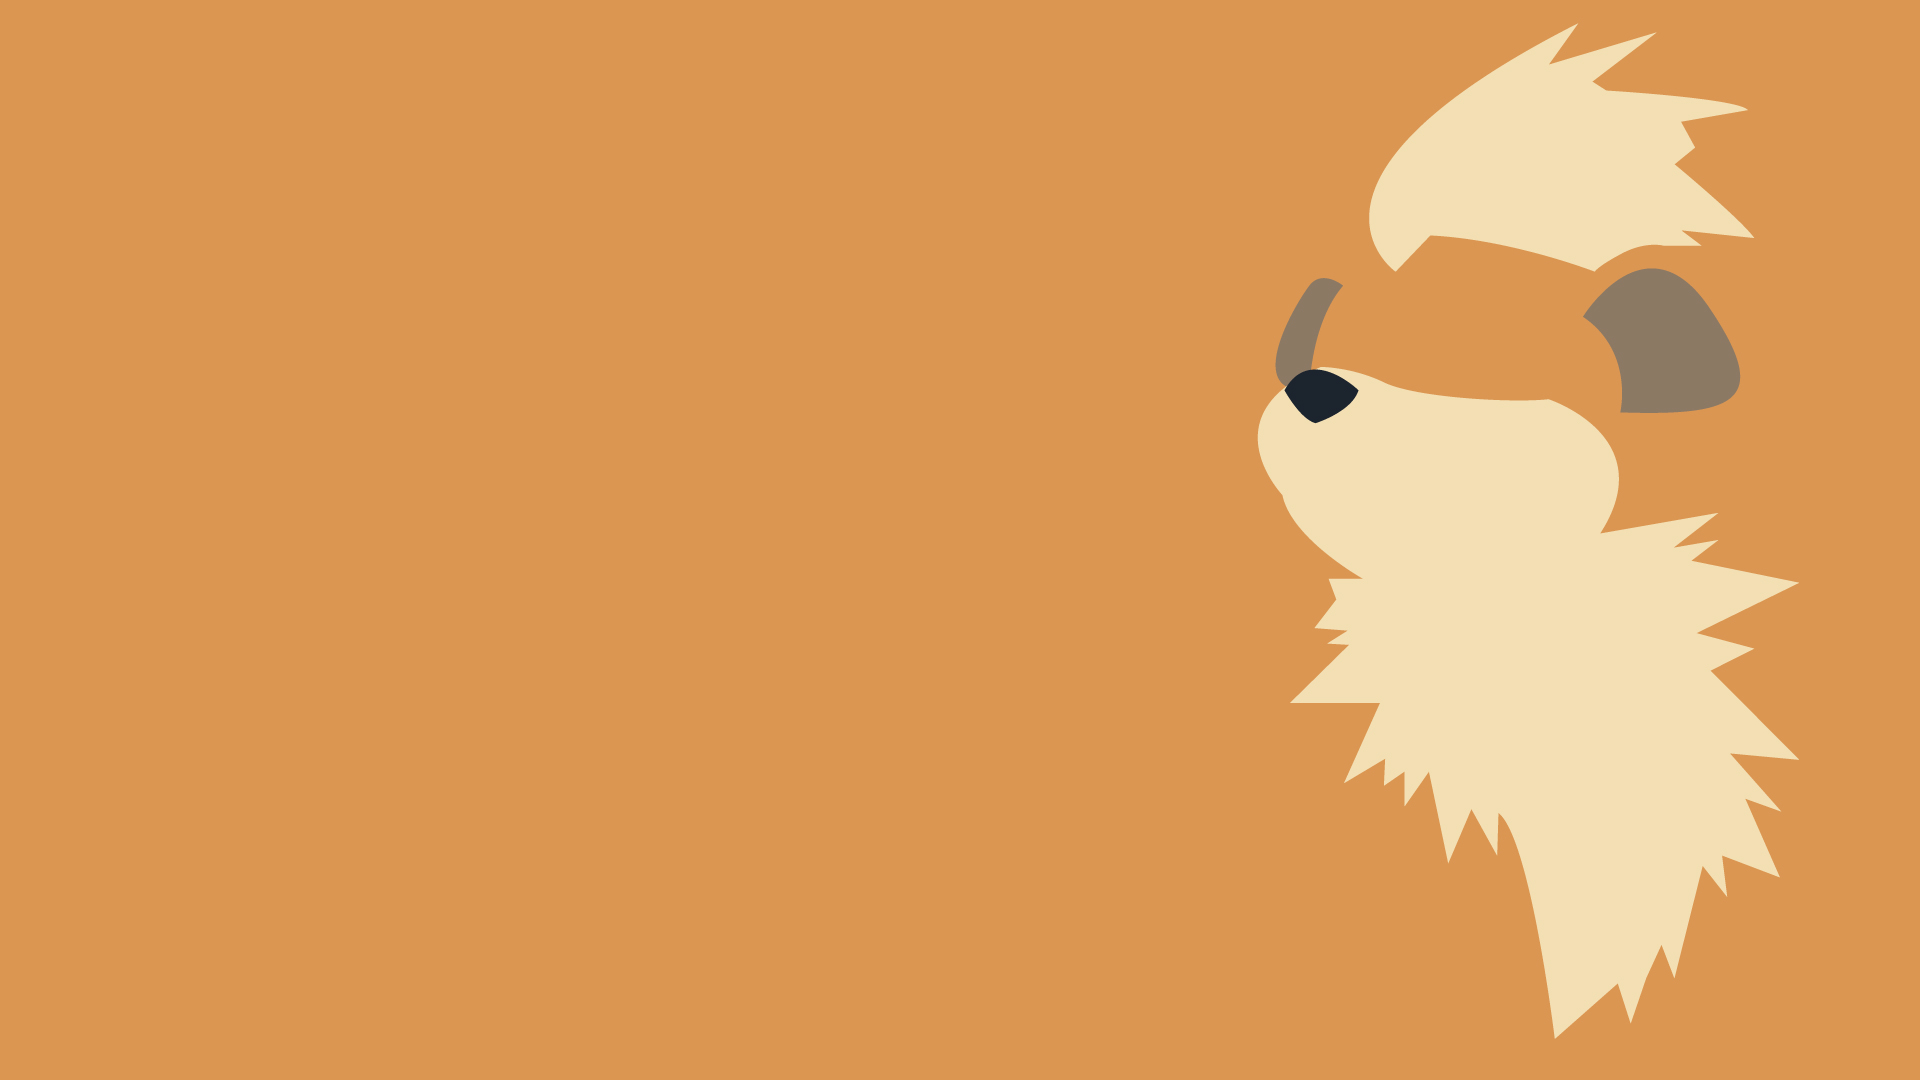 growlithe wallpaper - photo #4